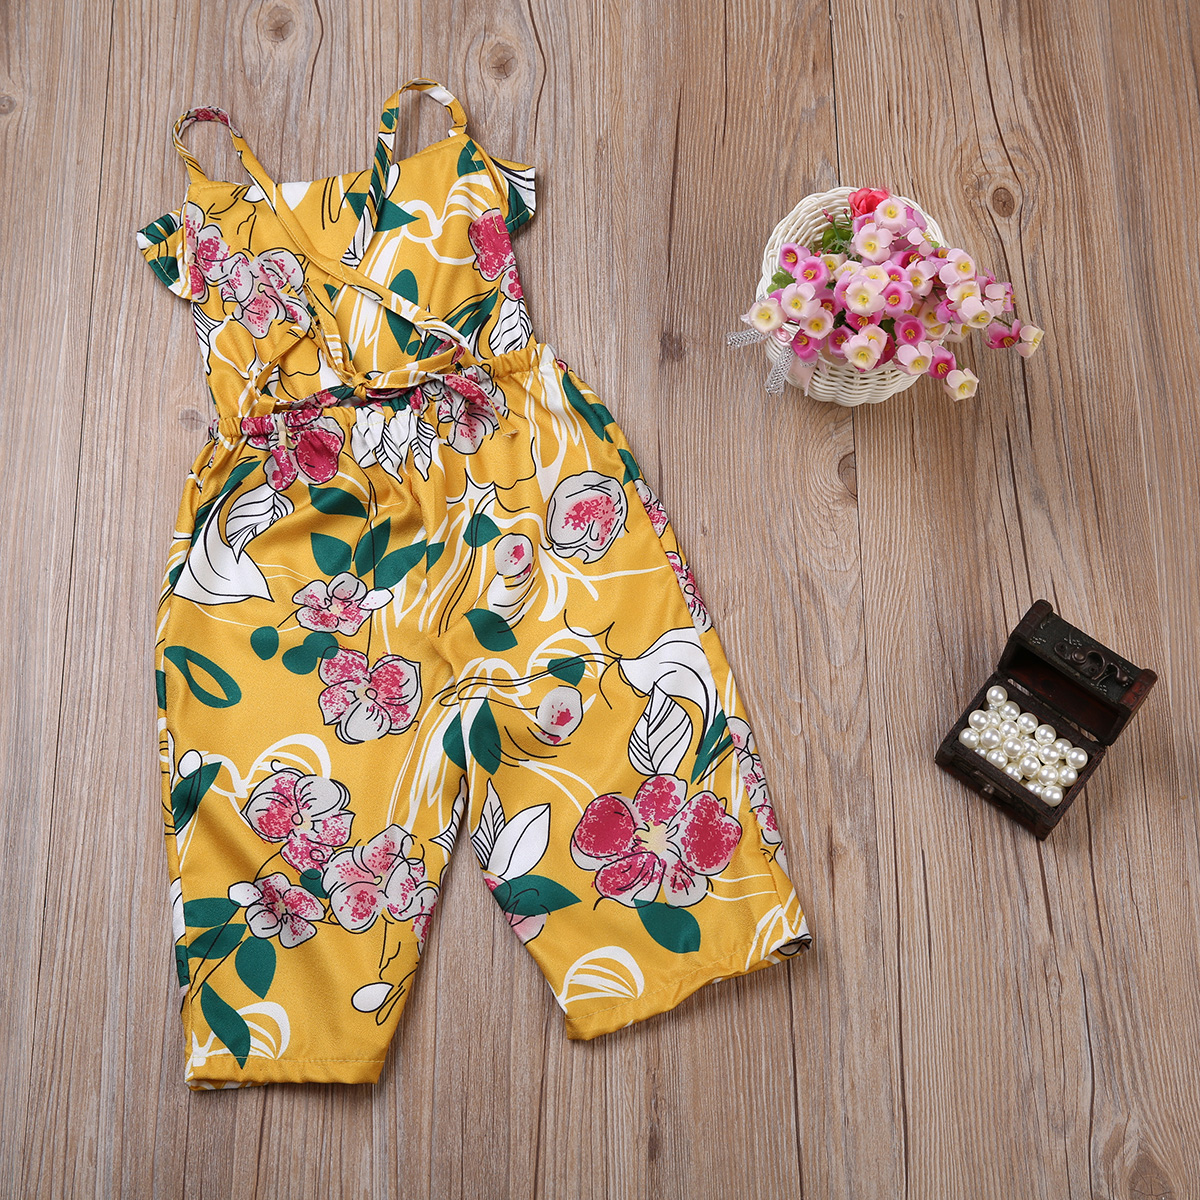 8f5f6b32854c Adorable Infant Toddler Kid Baby Girl Yellow Backless Floral Romper  Jumpsuit Playsuit Outfit Clothes Set 3 7Y-in Rompers from Mother   Kids on  ...